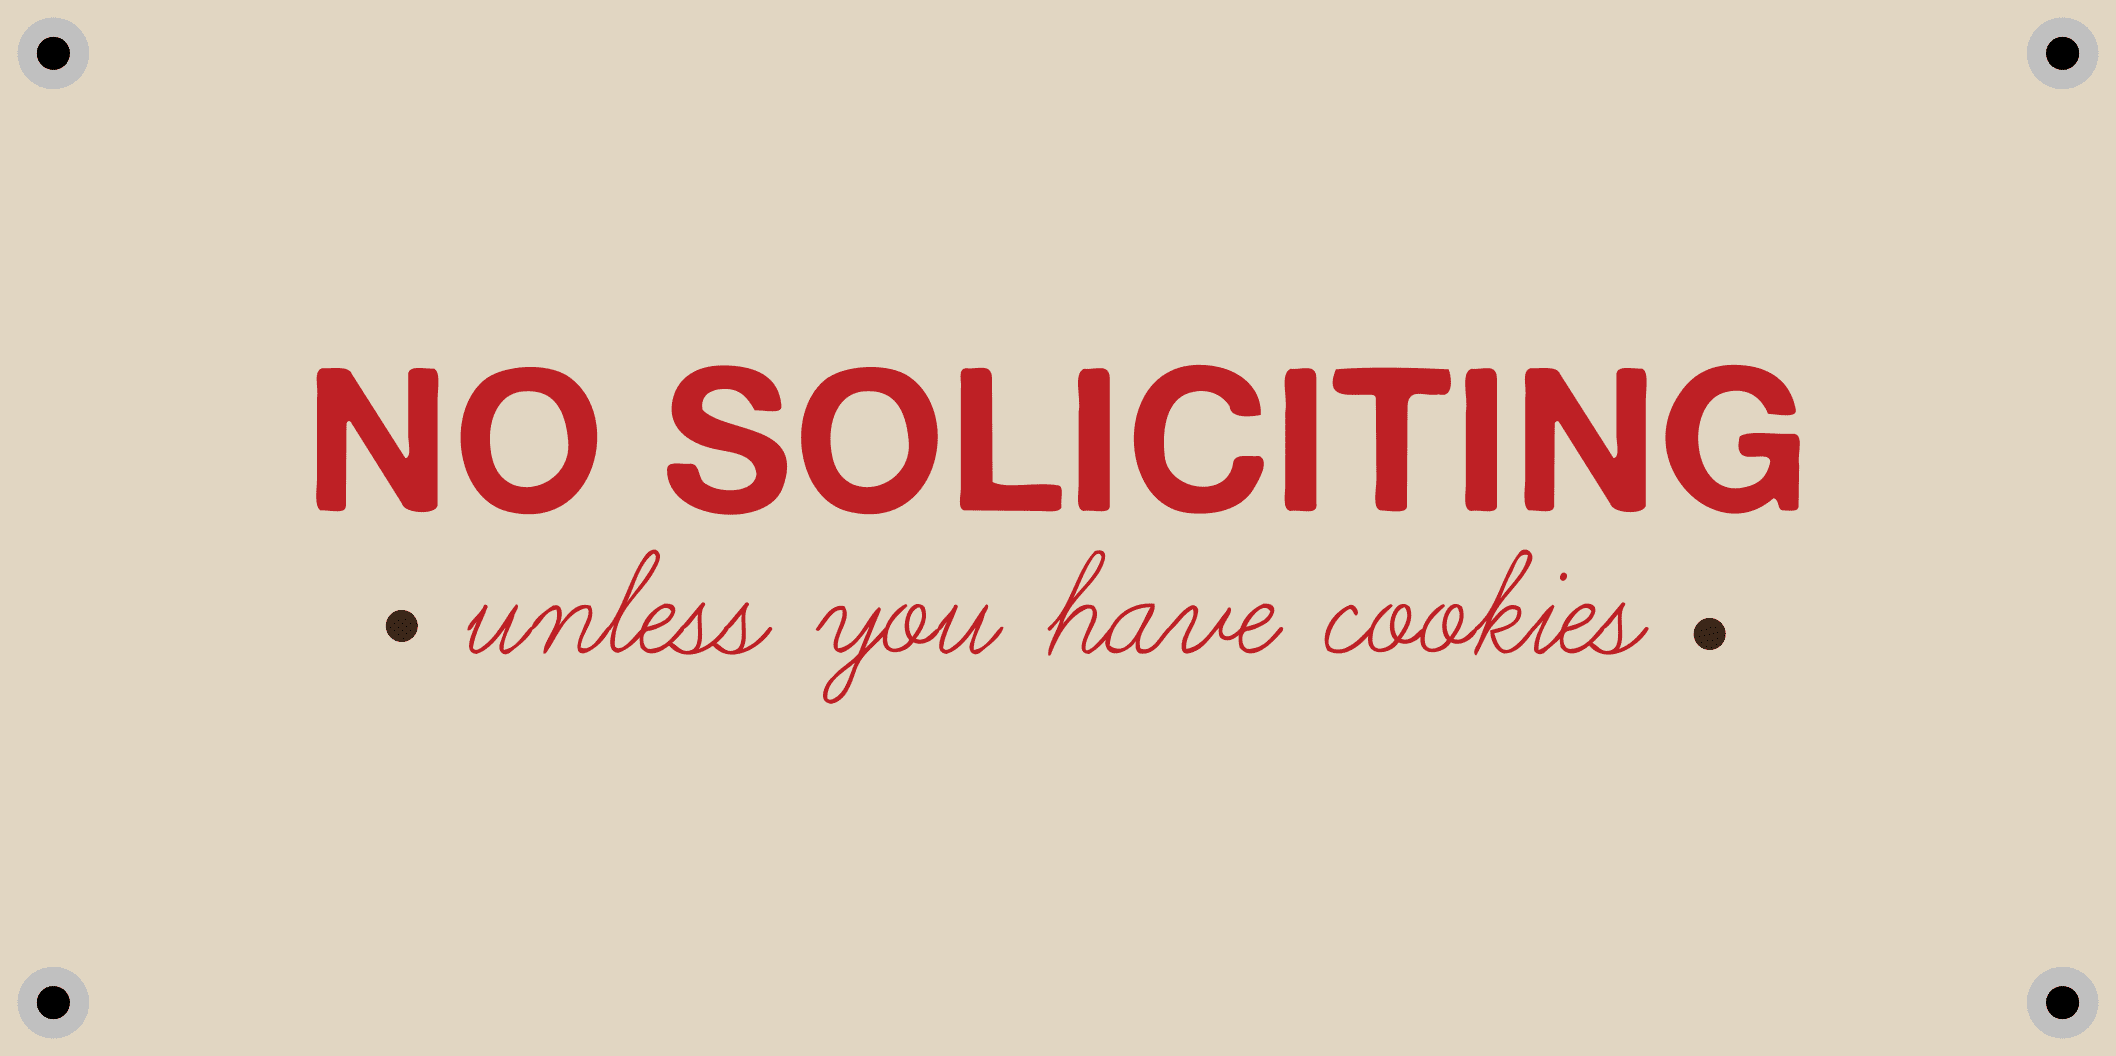 No soliciting unless you have cookies